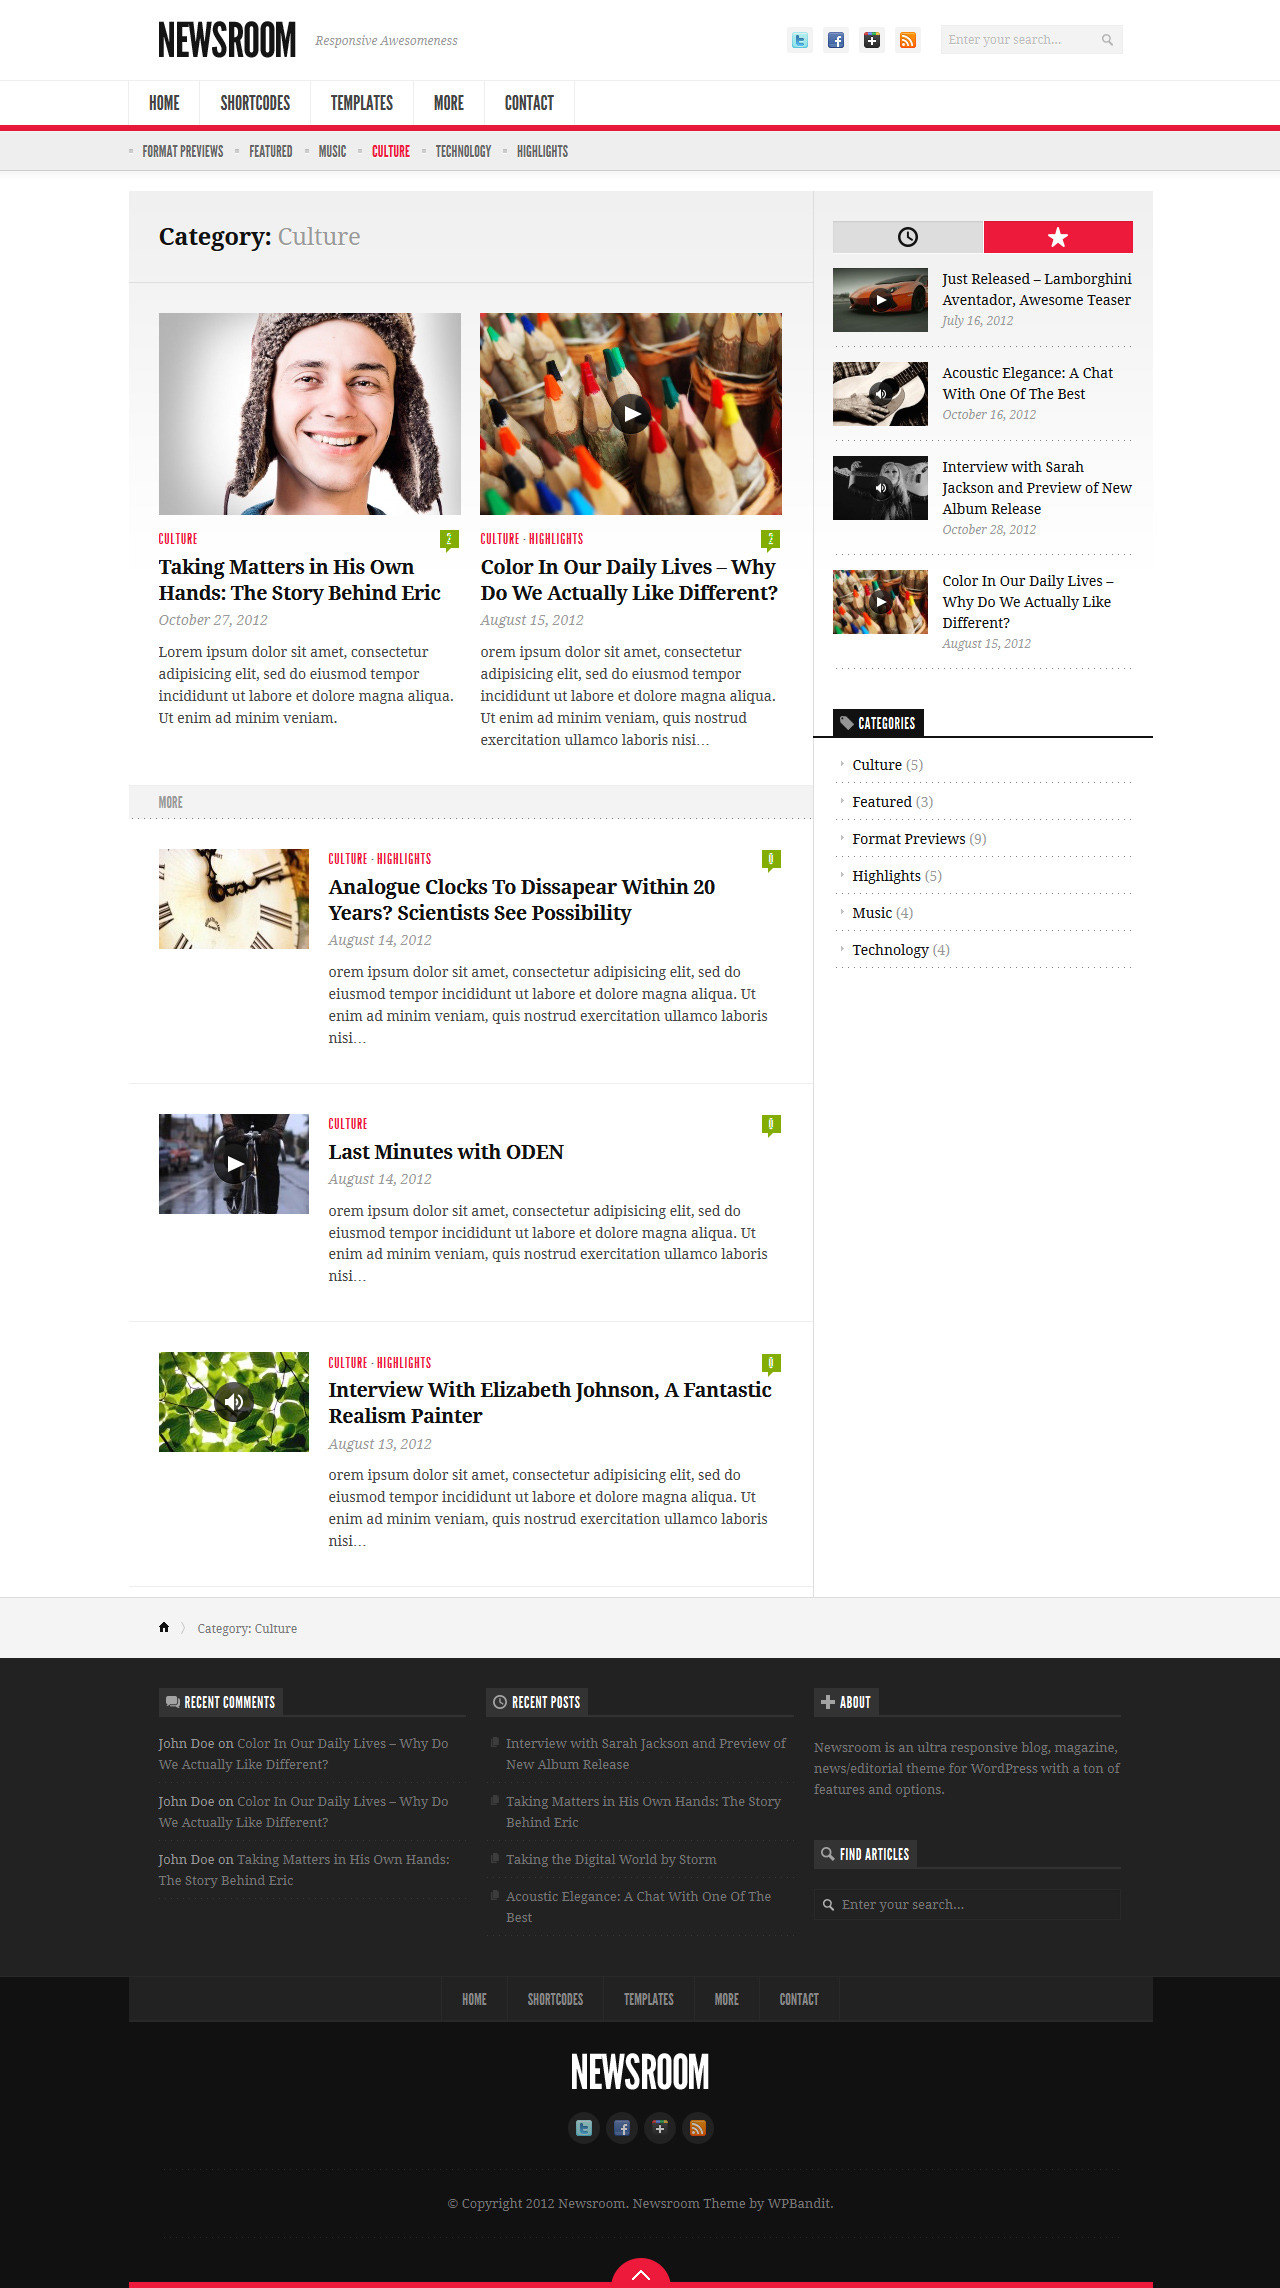 Newsroom - Responsive News & Magazine Theme